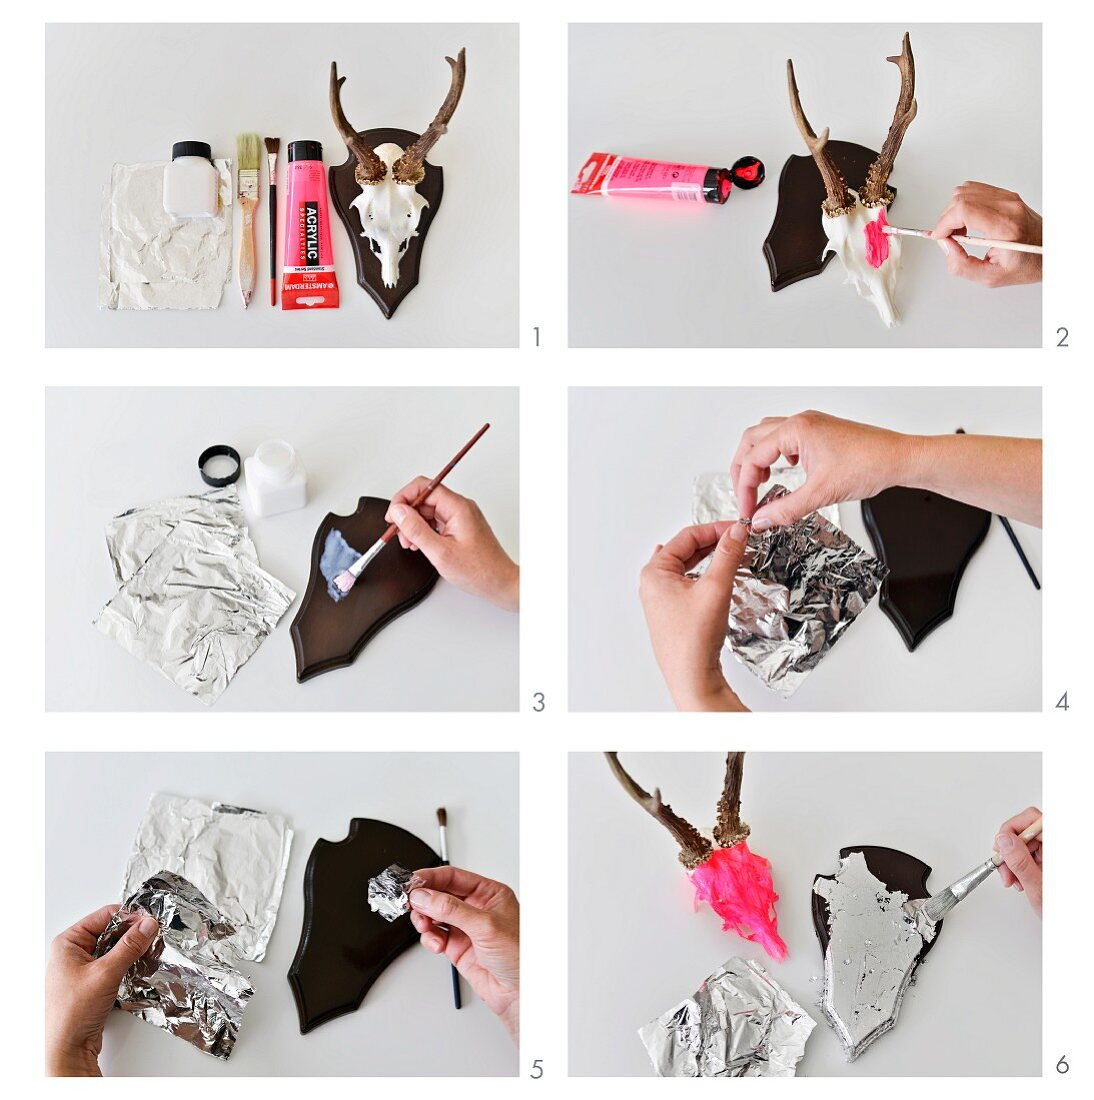 Instructions for restyling a traditional hunting trophy using neon acrylic paint and silver leaf